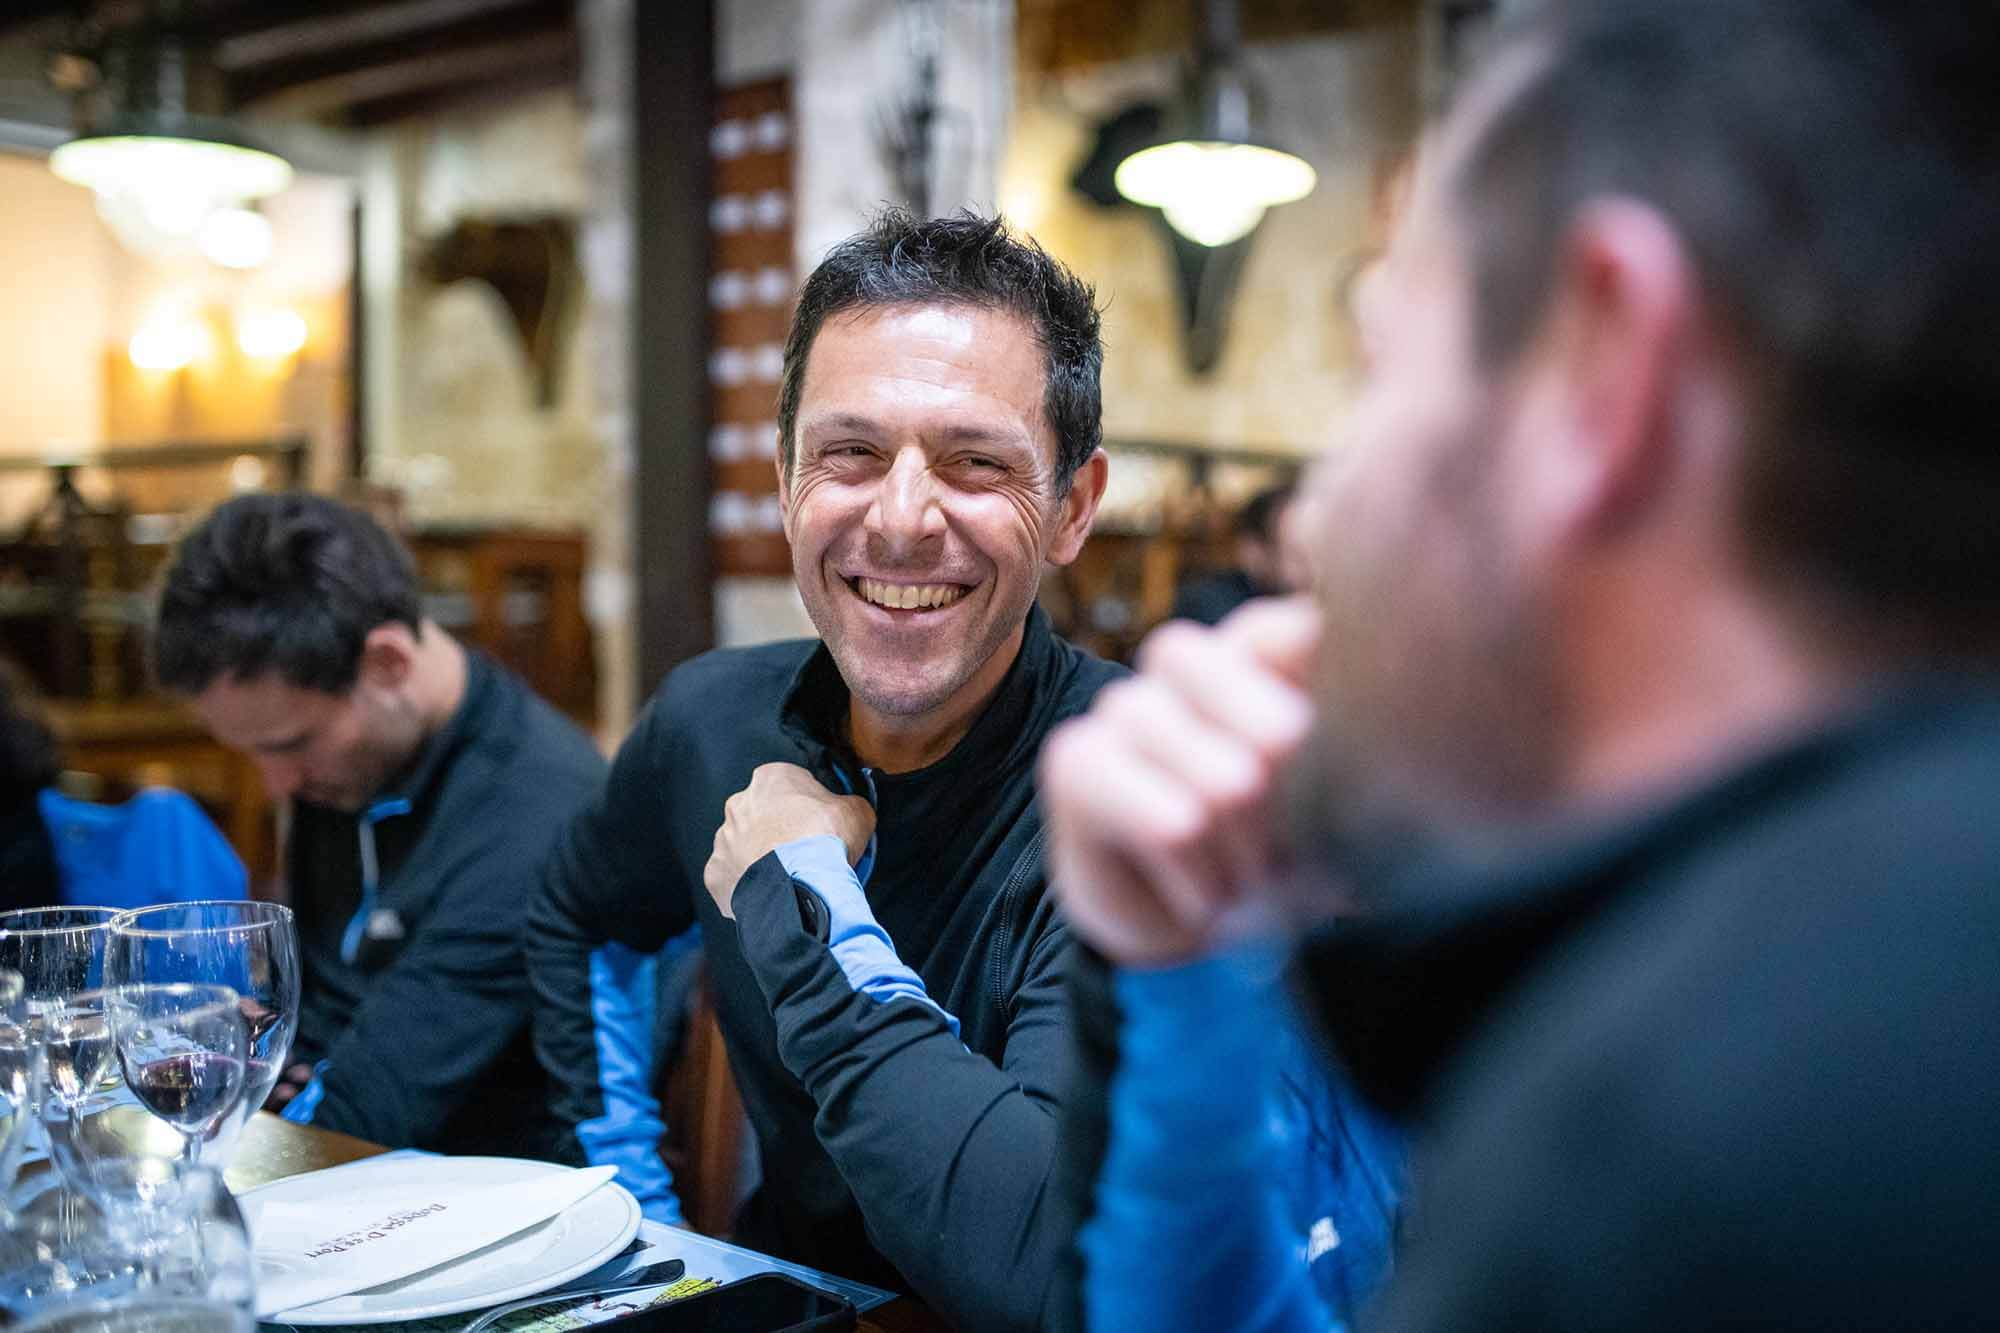 HOKA athlete and team manager Julien Chorier smiling at dinner